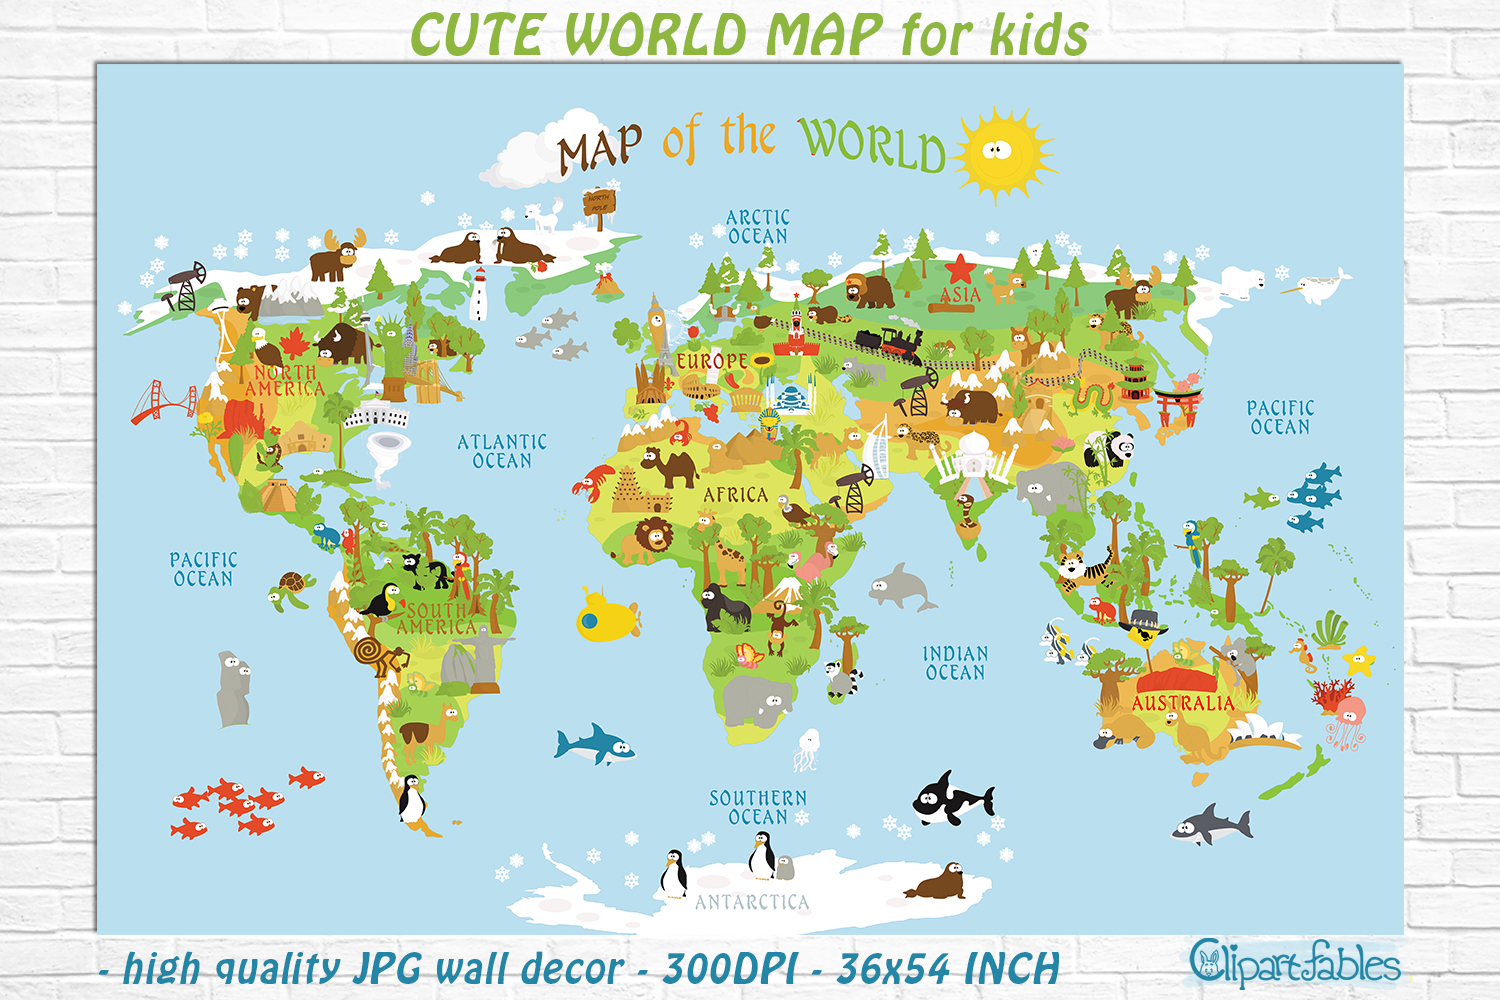 graphic about Printable World Ma identify Adorable Printable Entire world MAP for children - gender impartial area artwork